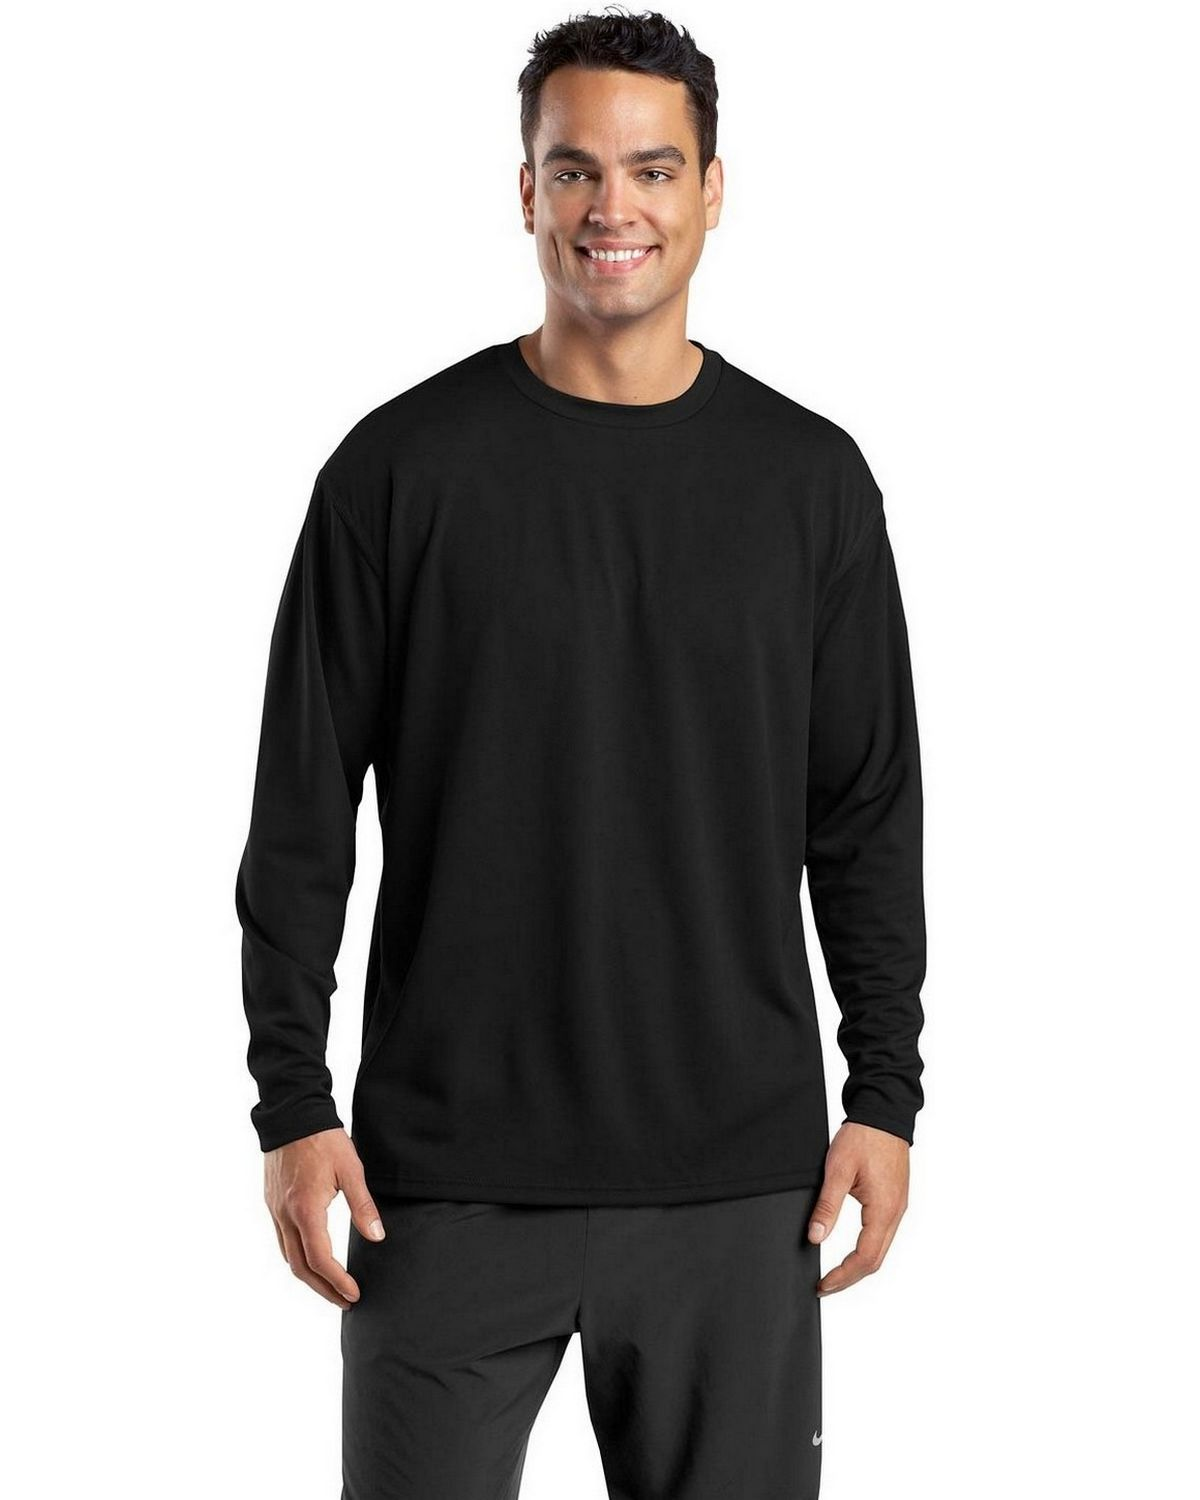 Sport-Tek K368 Dri-Mesh Long Sleeve T-Shirt - Black - XL K368